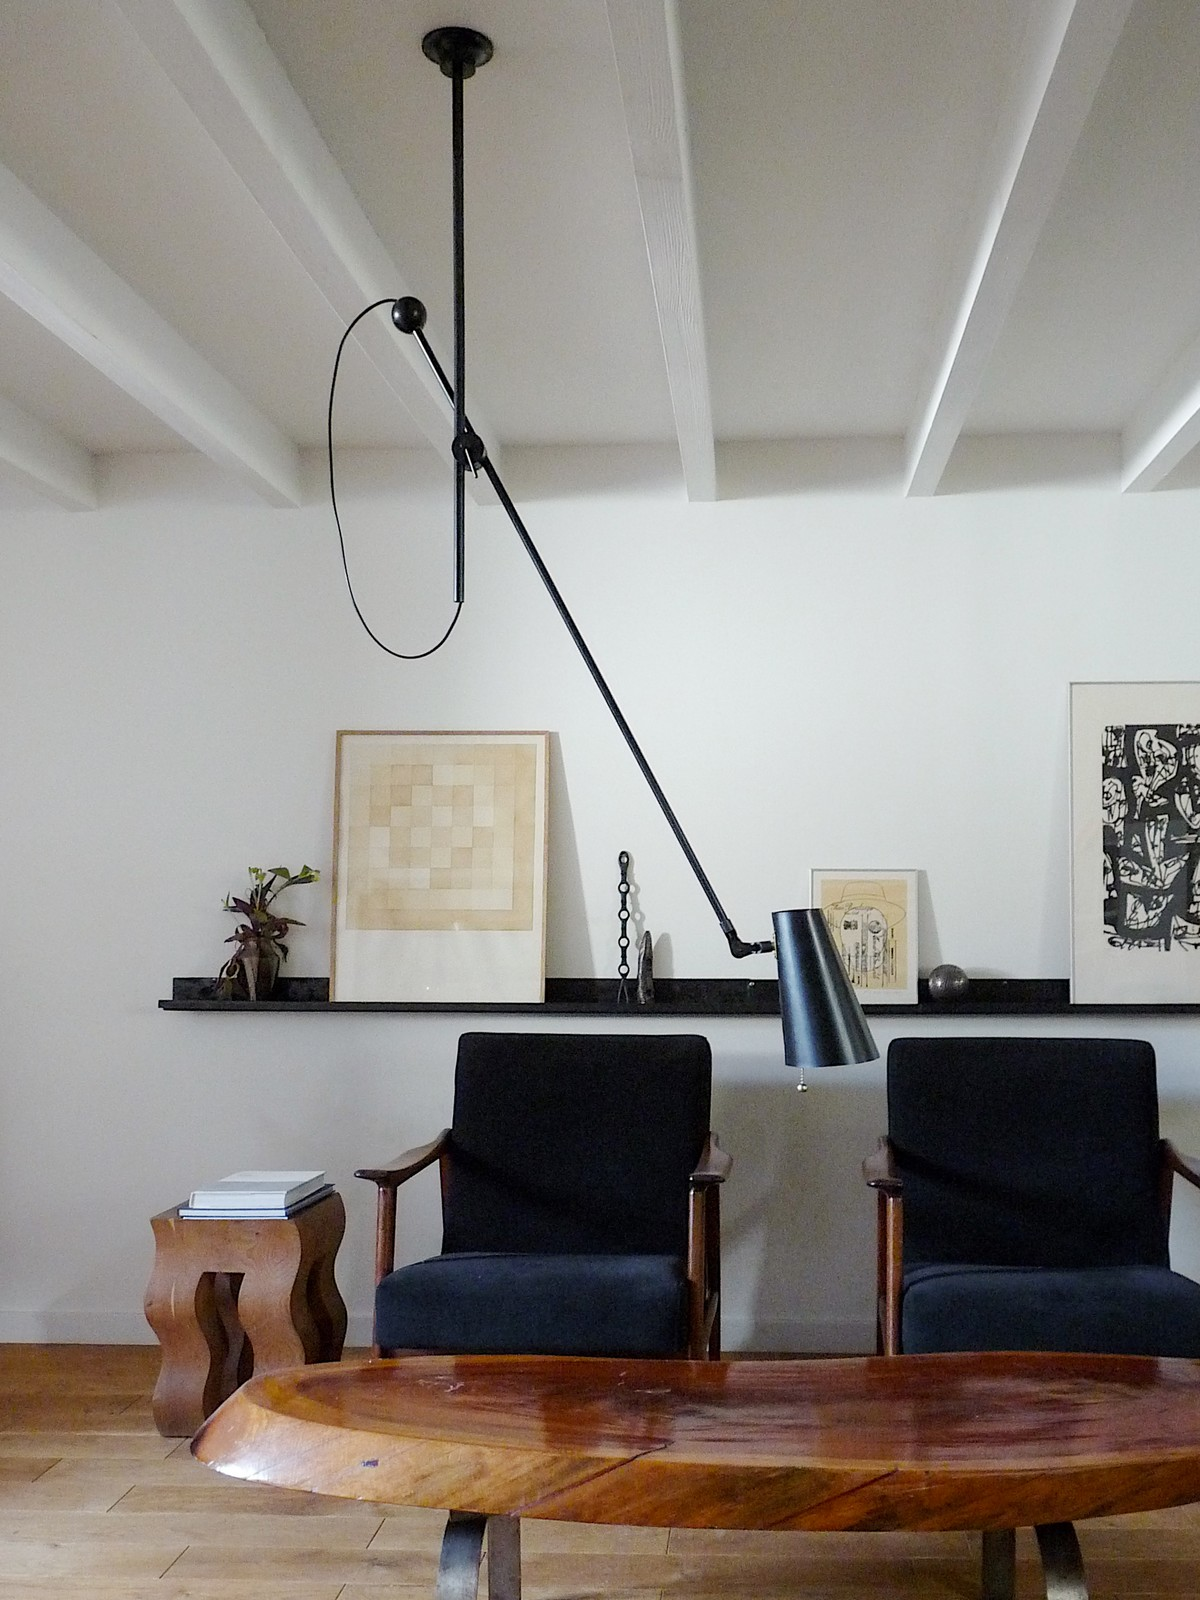 Lighting  installation pendant 1-arm remodelista